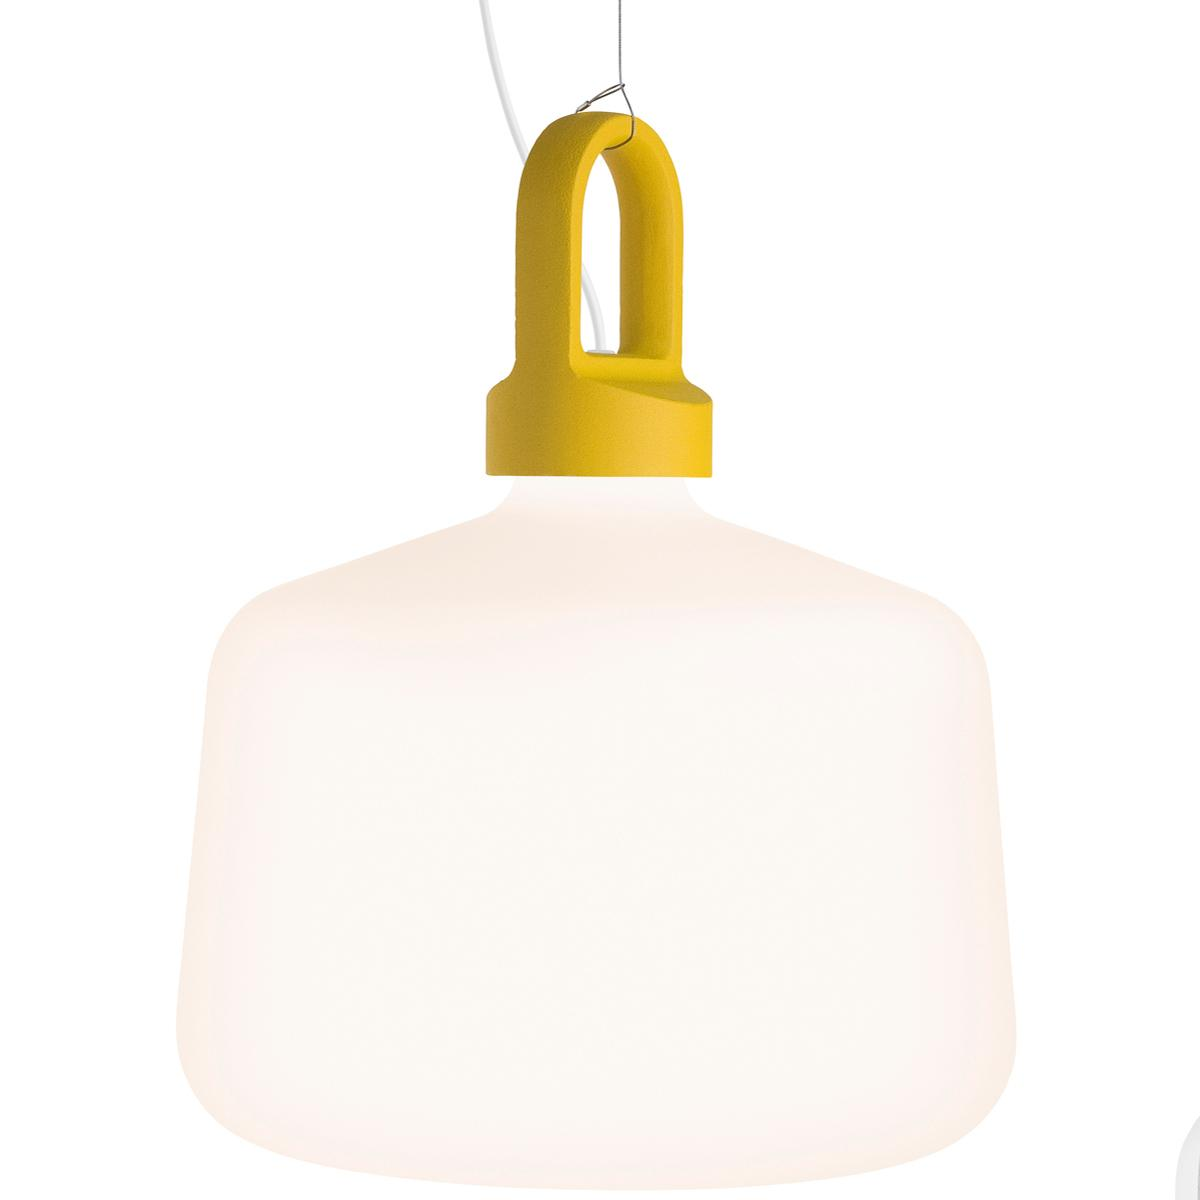 Zero Bottle hanglamp Halogeen geel